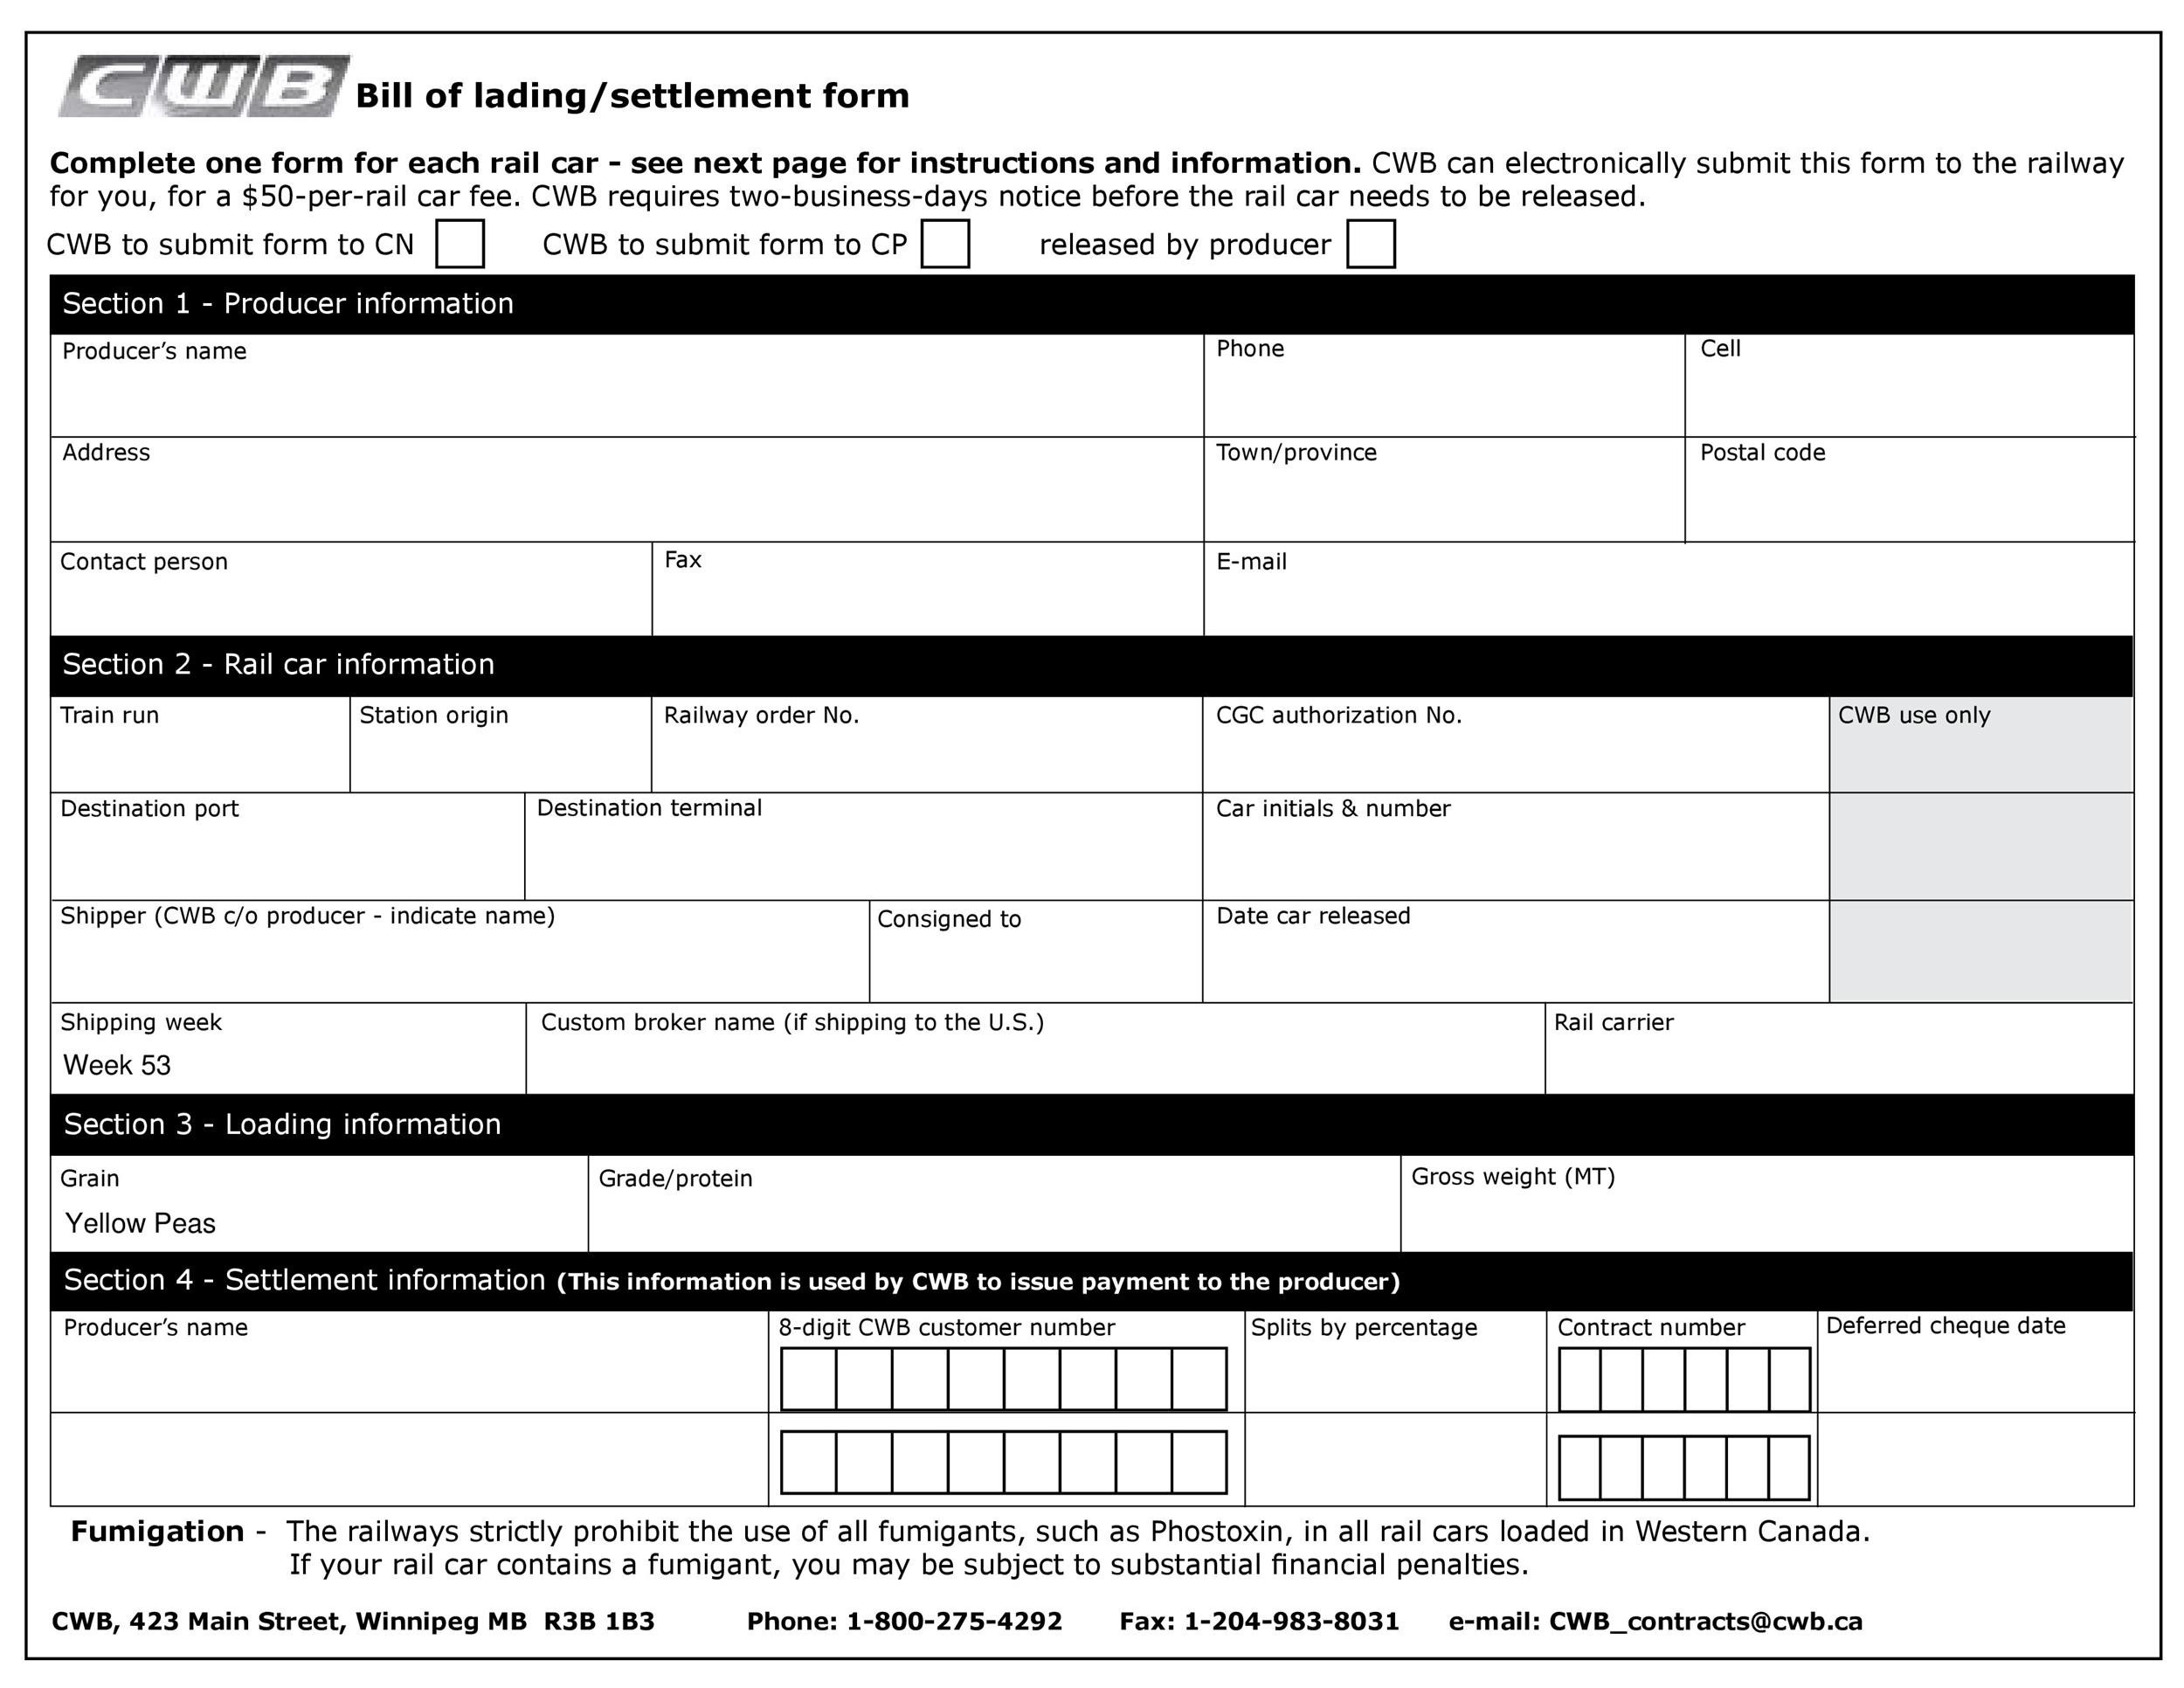 40 Free Bill of Lading Forms  Templates - Template Lab - truck bill of lading form